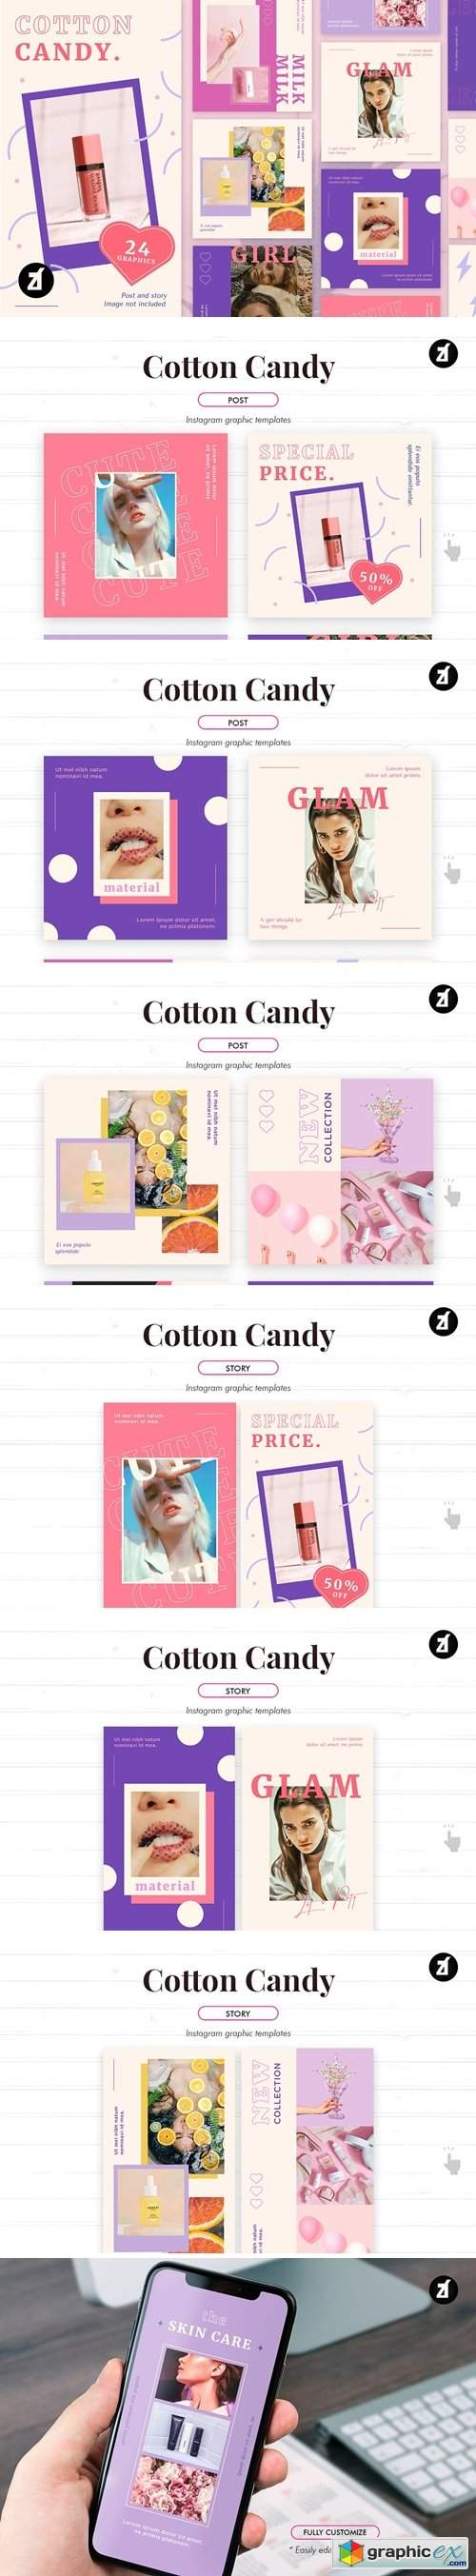 Cotton candy social media templates